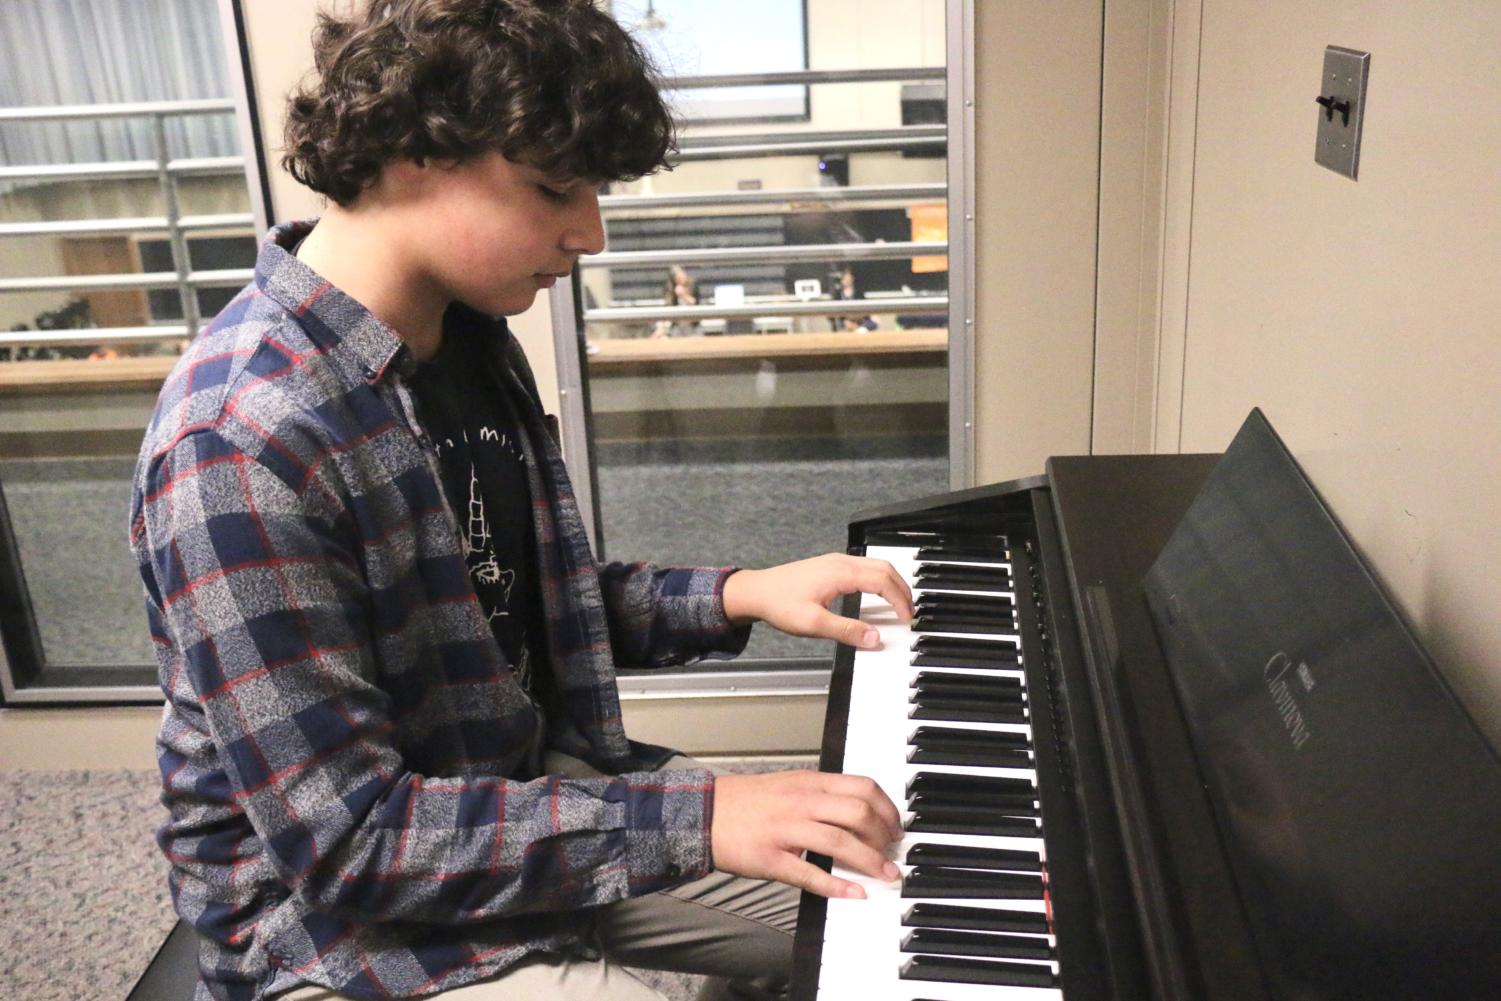 Sophomore+Caleb+Beik+improvises+a+small+tune+while+warming+up+for+a+concert+practice+on+October+3.+Beik+states%2C+%E2%80%9CI%E2%80%99ve+been+playing+piano+since+I+was+three+years+old%2C+it%E2%80%99s+something+that+comes+natural+to+me+at+this+point.+I+love+being+able+to+express+myself+with+music%E2%80%9D.+Beik+explains+when+he+has+free+time+during+class+periods+he+practices+his+skills+during+them.+THEA+BERTOLINI%2FPHOTO.+%0A